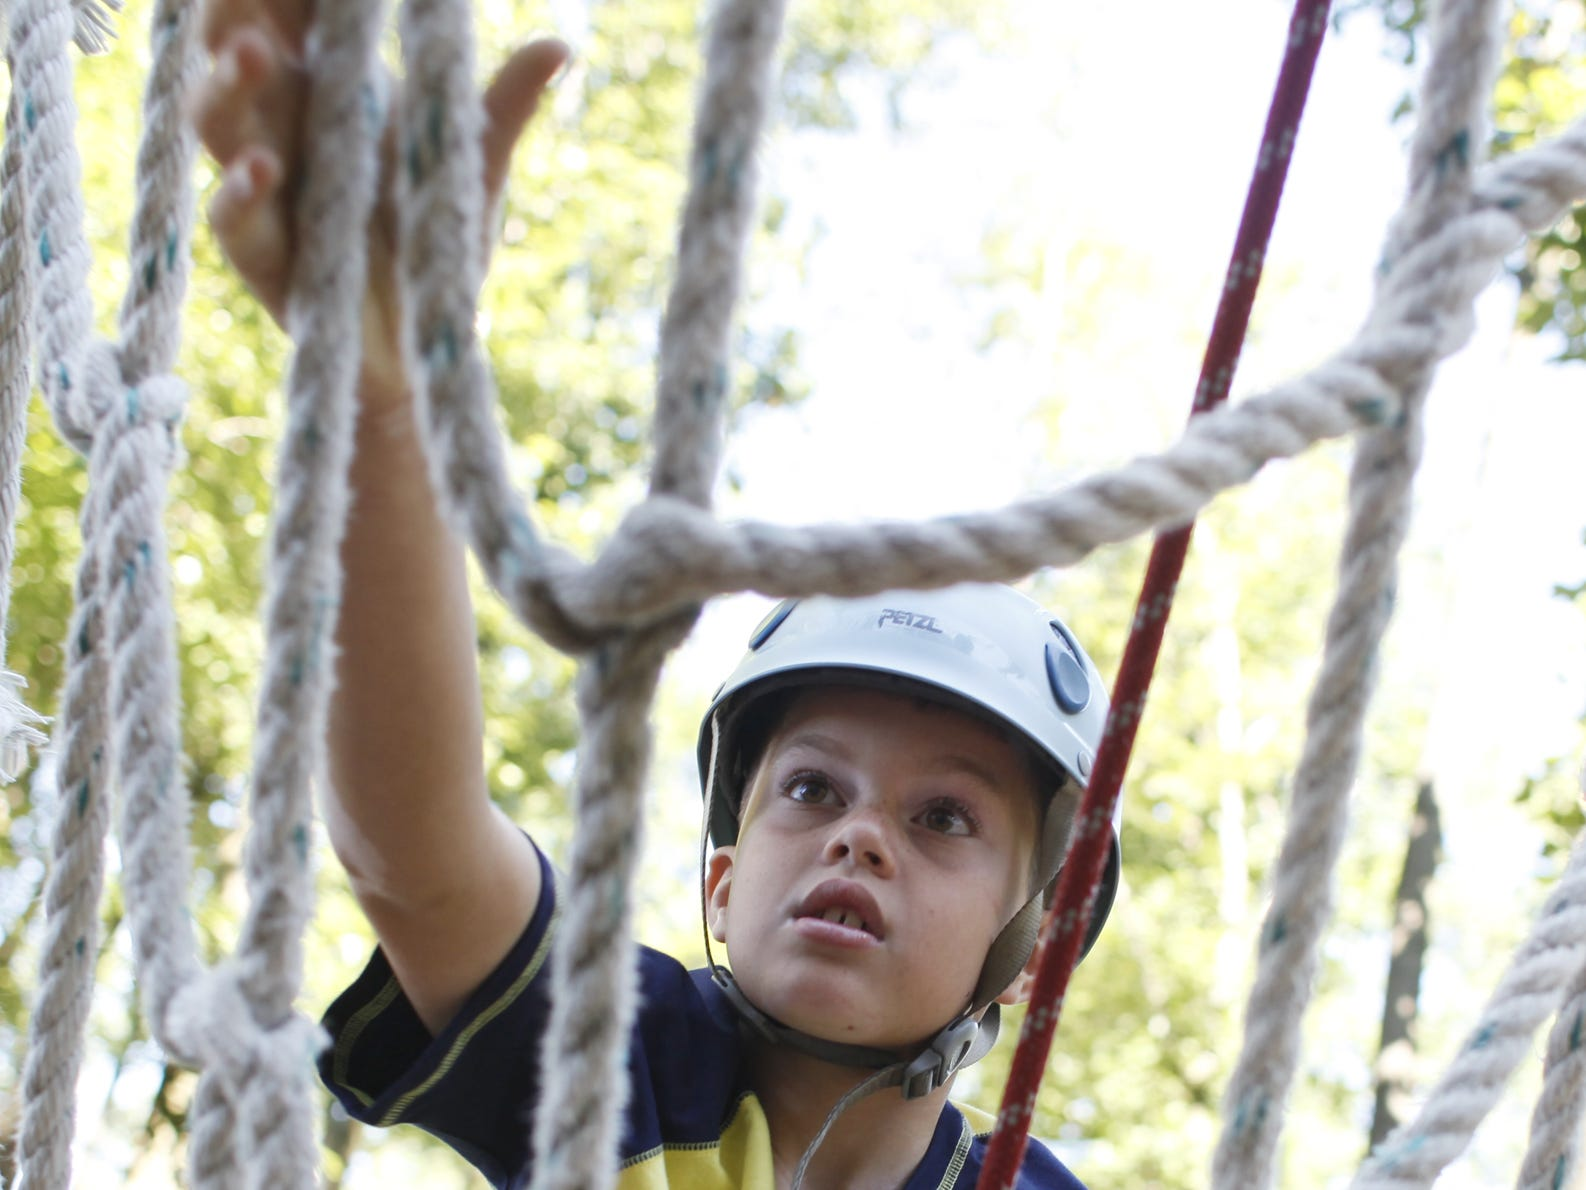 Ben Delozier, 10 of New Cumberland, climbs up the rope ladder to the zip line tower at Roundtop Mountain Resort's ropes course on Thursday, July 14, 2011.